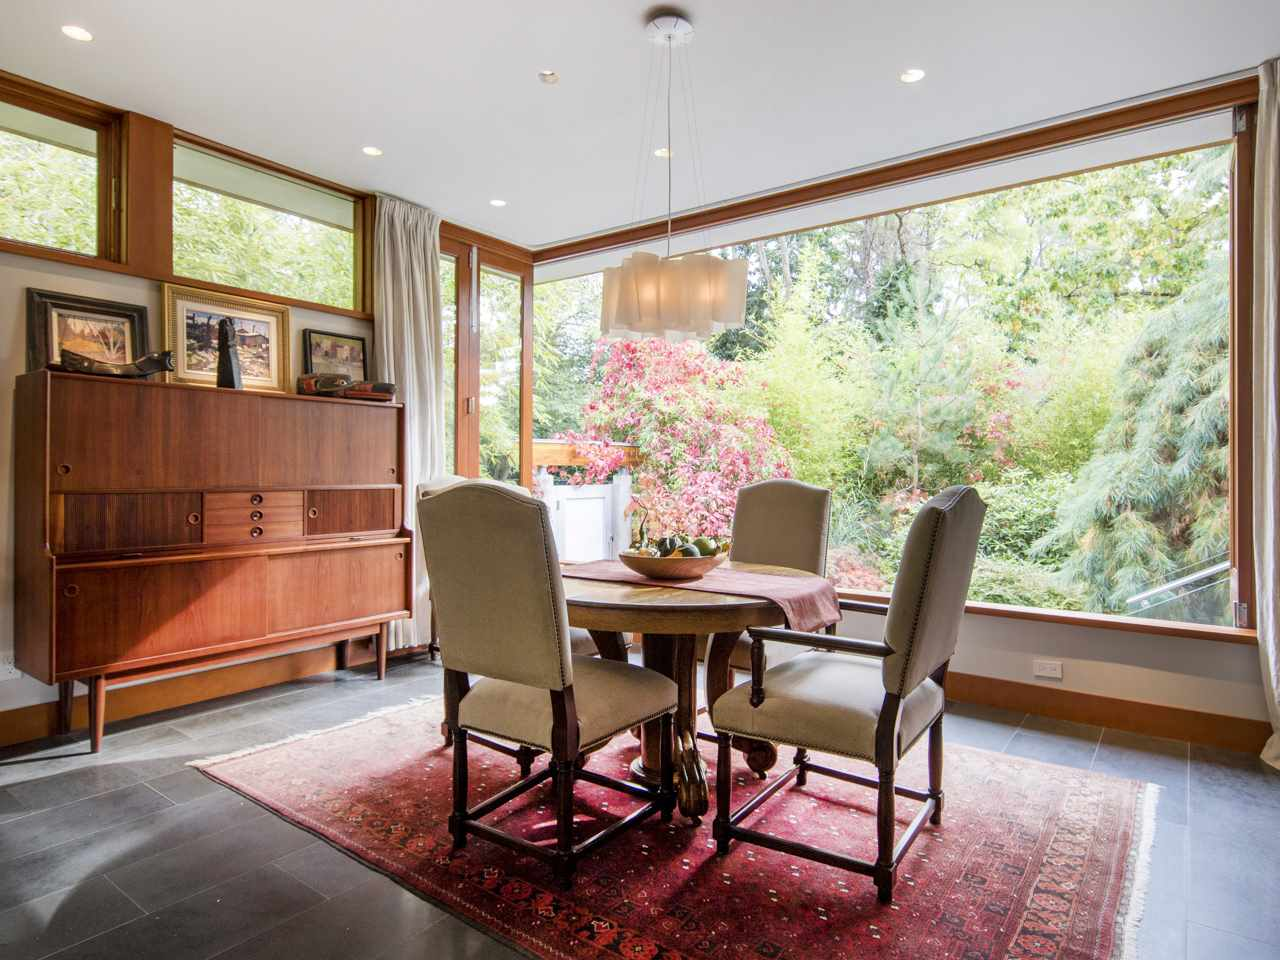 Photo 12: 6475 COLLINGWOOD STREET in Vancouver: Southlands House for sale (Vancouver West)  : MLS® # R2006770